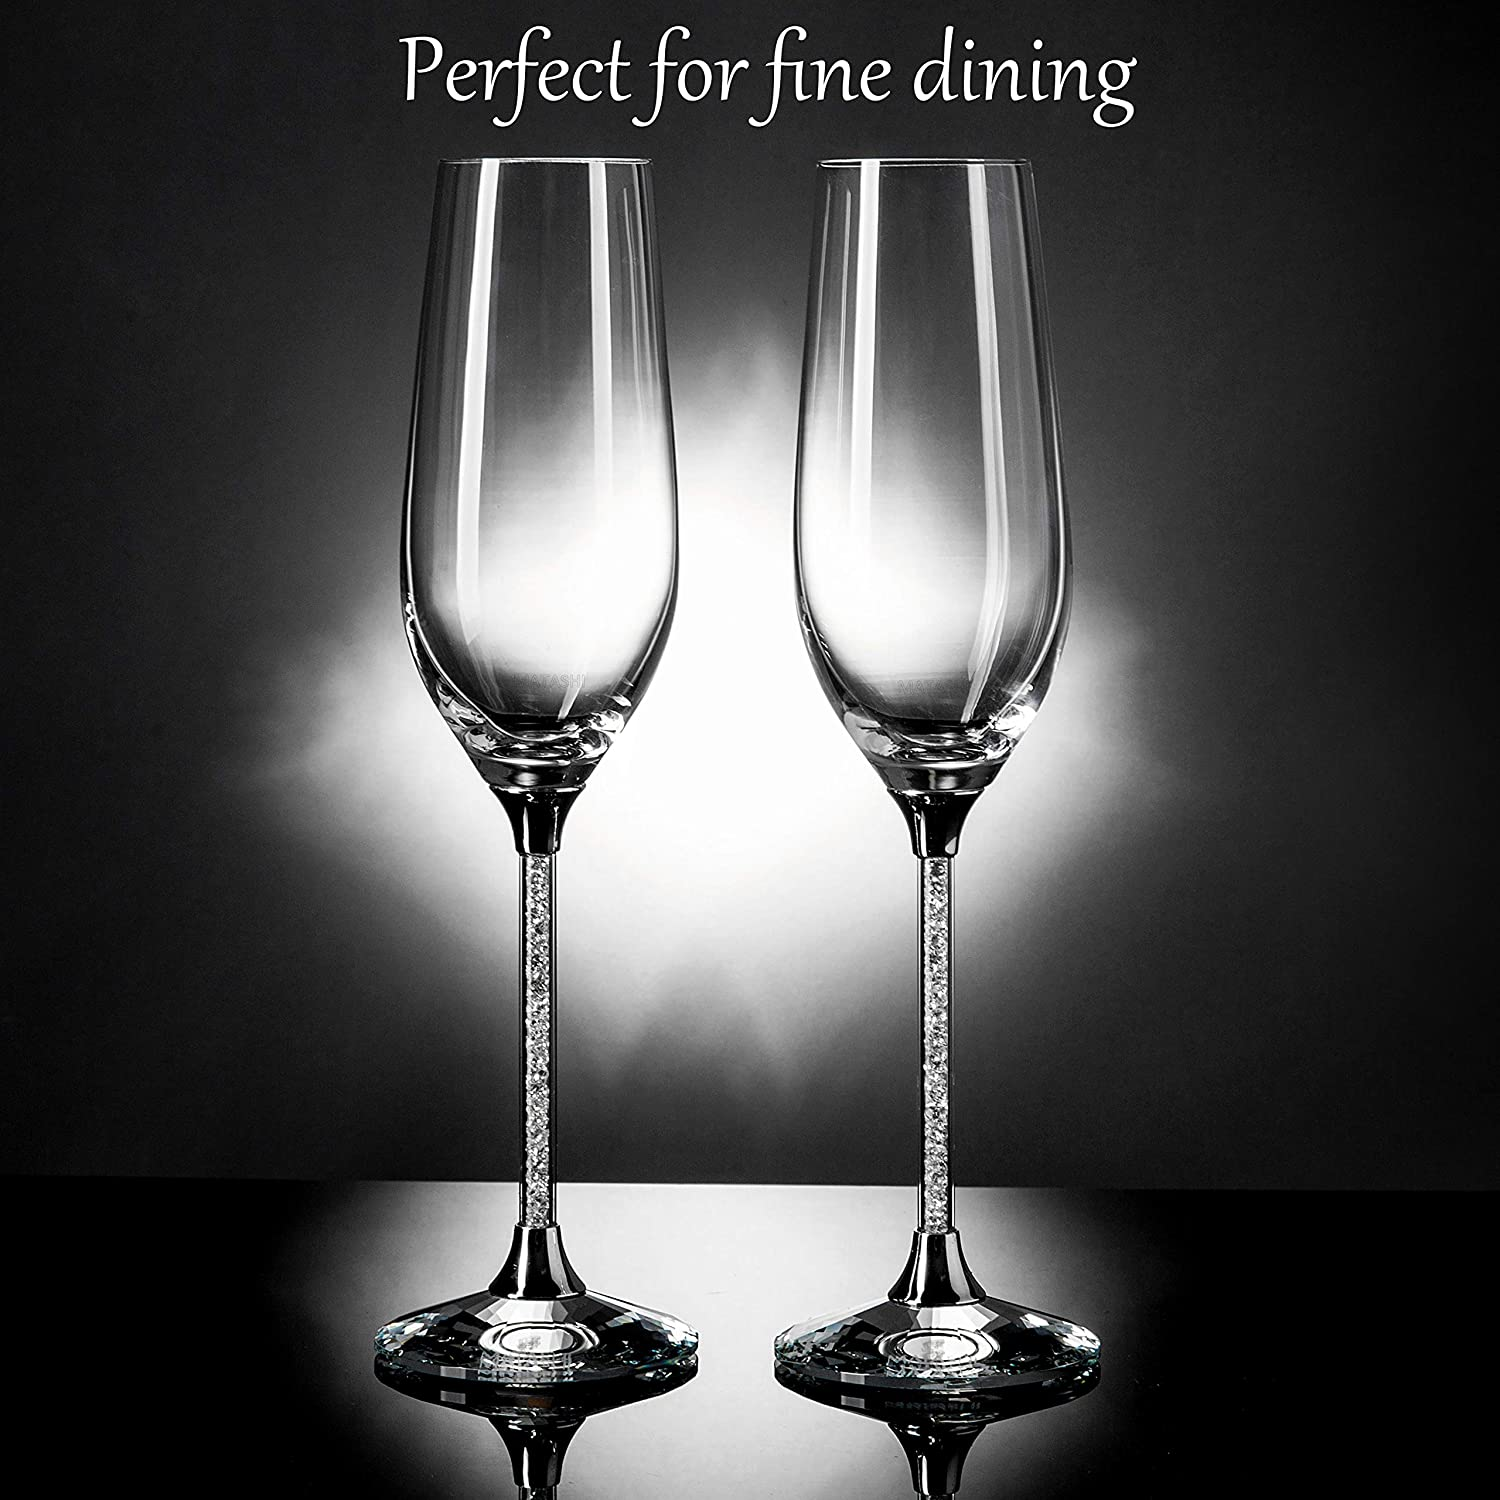 Matashi Set of 2 Champagne Flutes with Lead Free Titanium Sparkling Crystal Filled Long Stem Toasting Glasses 8oz 10-inch Tall Glassware- Romantic Glass for Valentines Day Parties /& Celebration